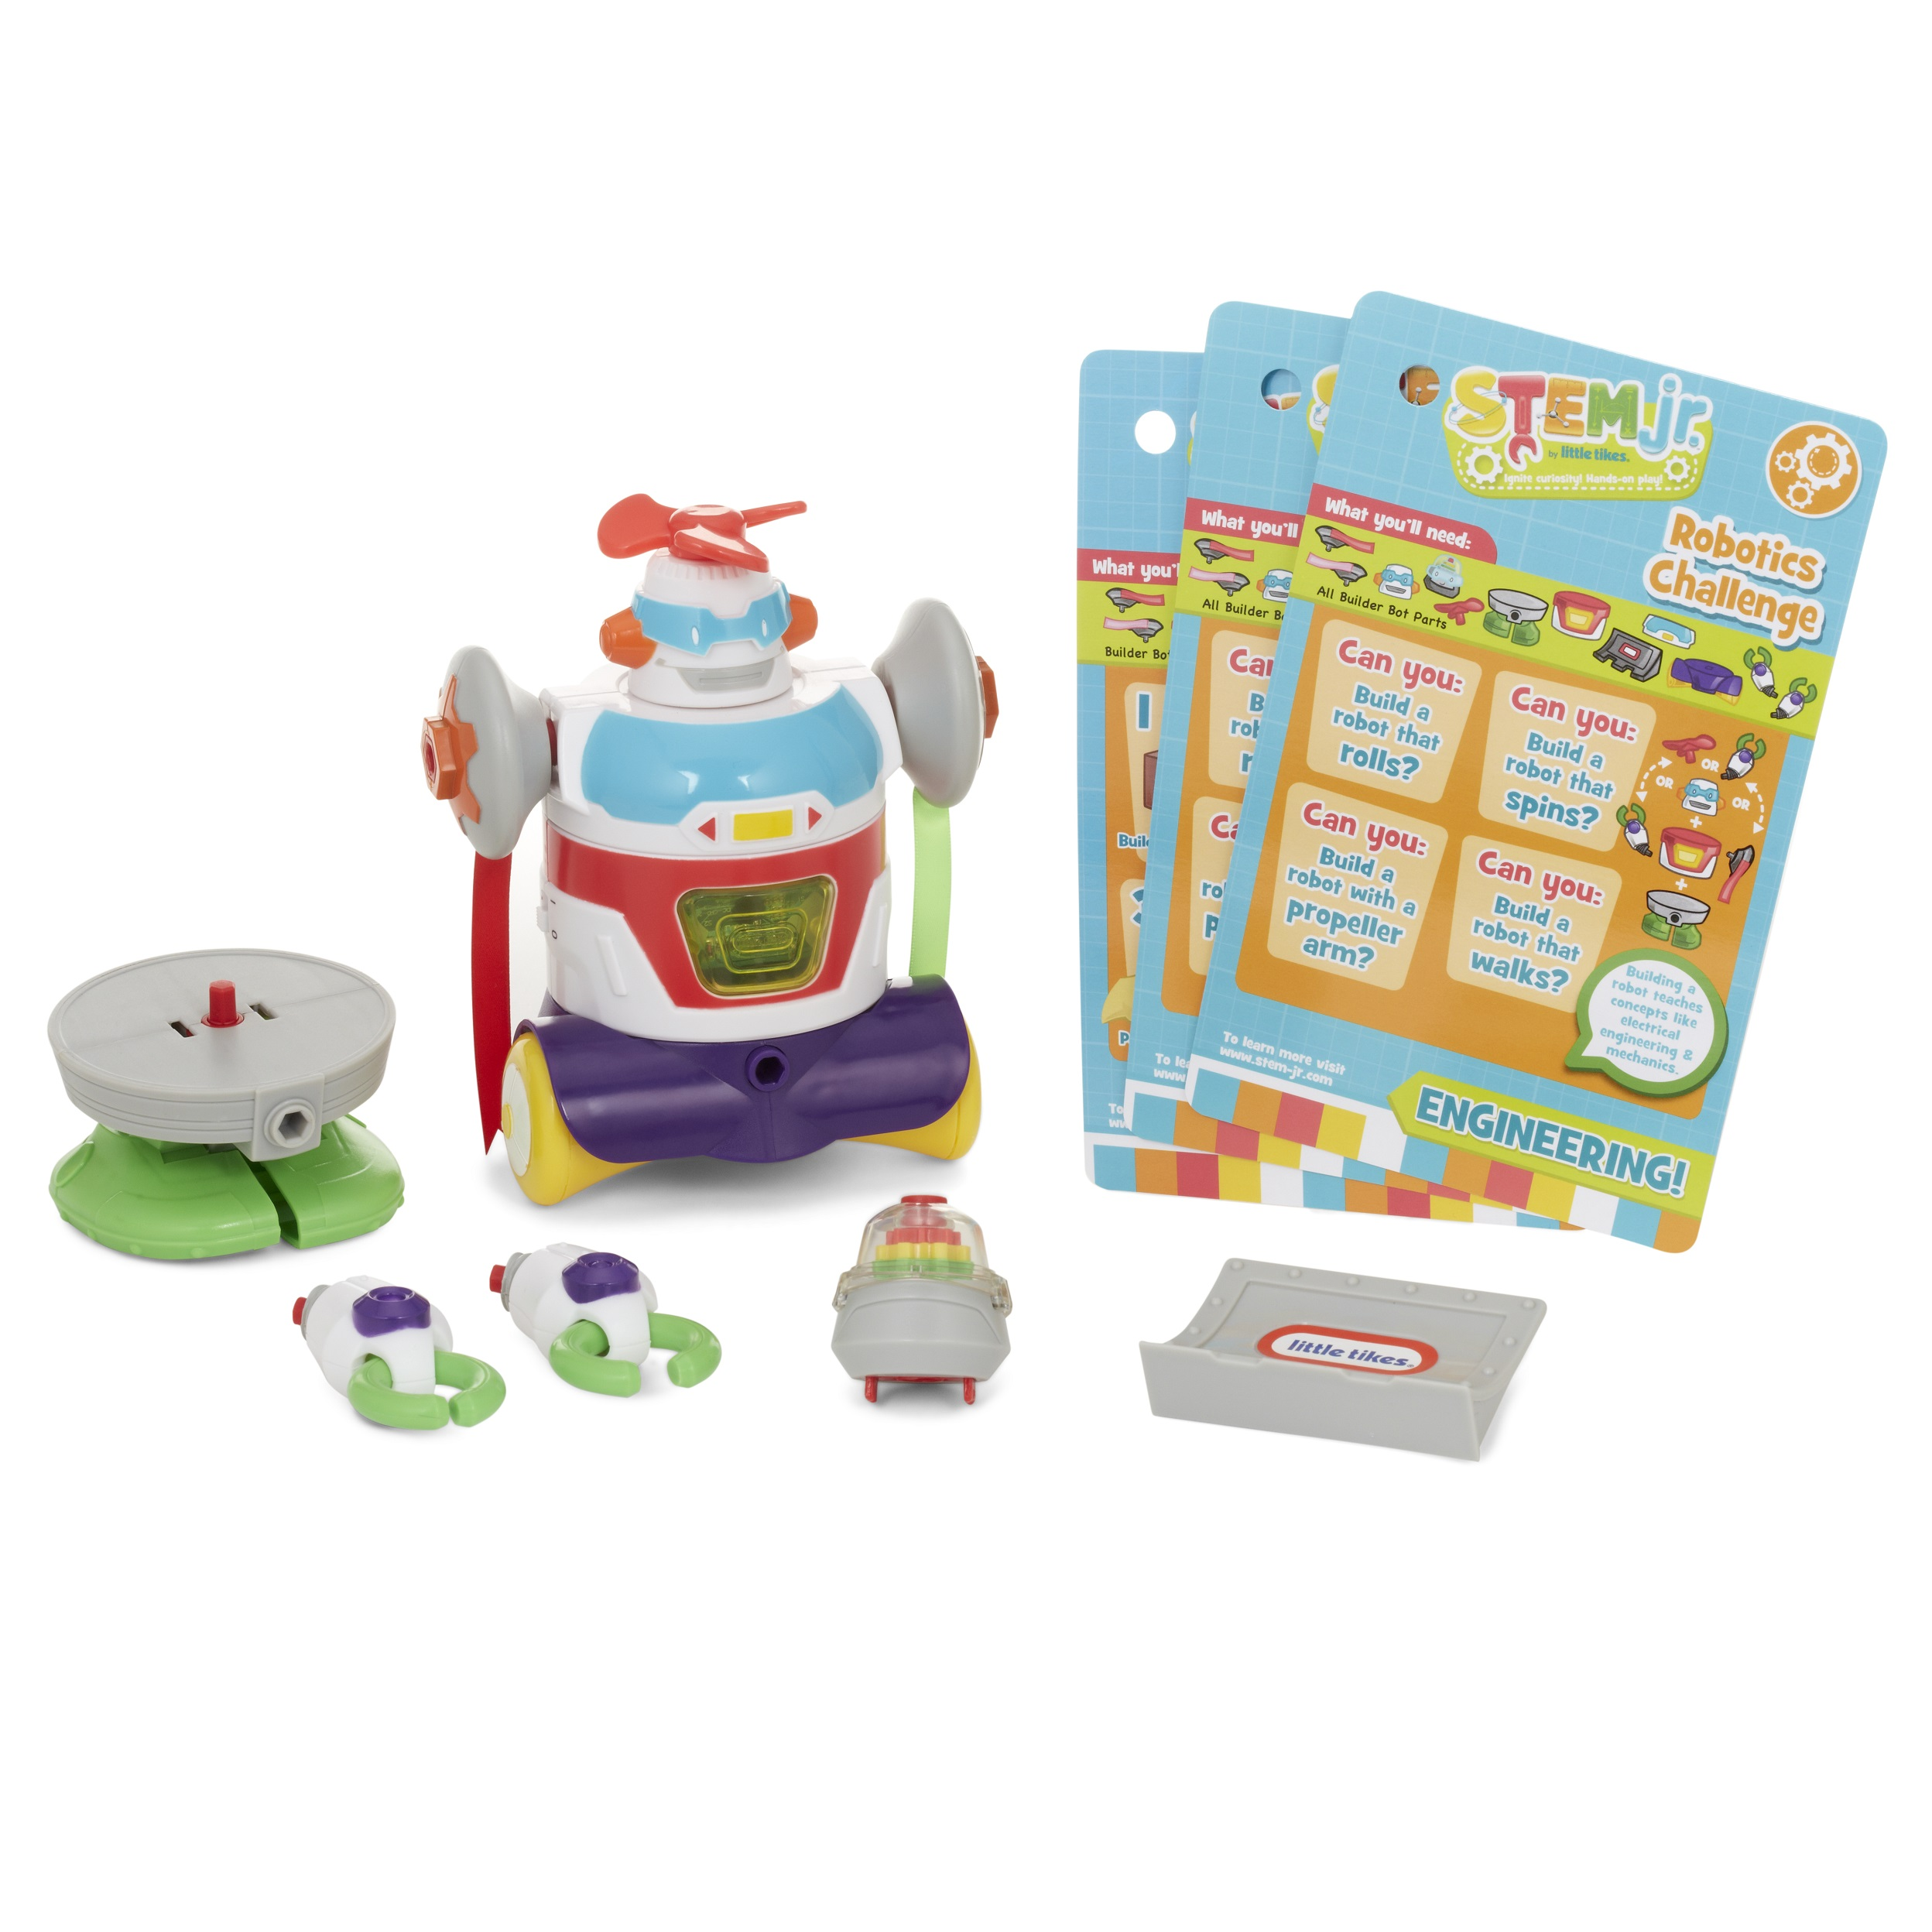 Little Tikes Stem Jr. Builder Bot with 4- Hands on Experiments